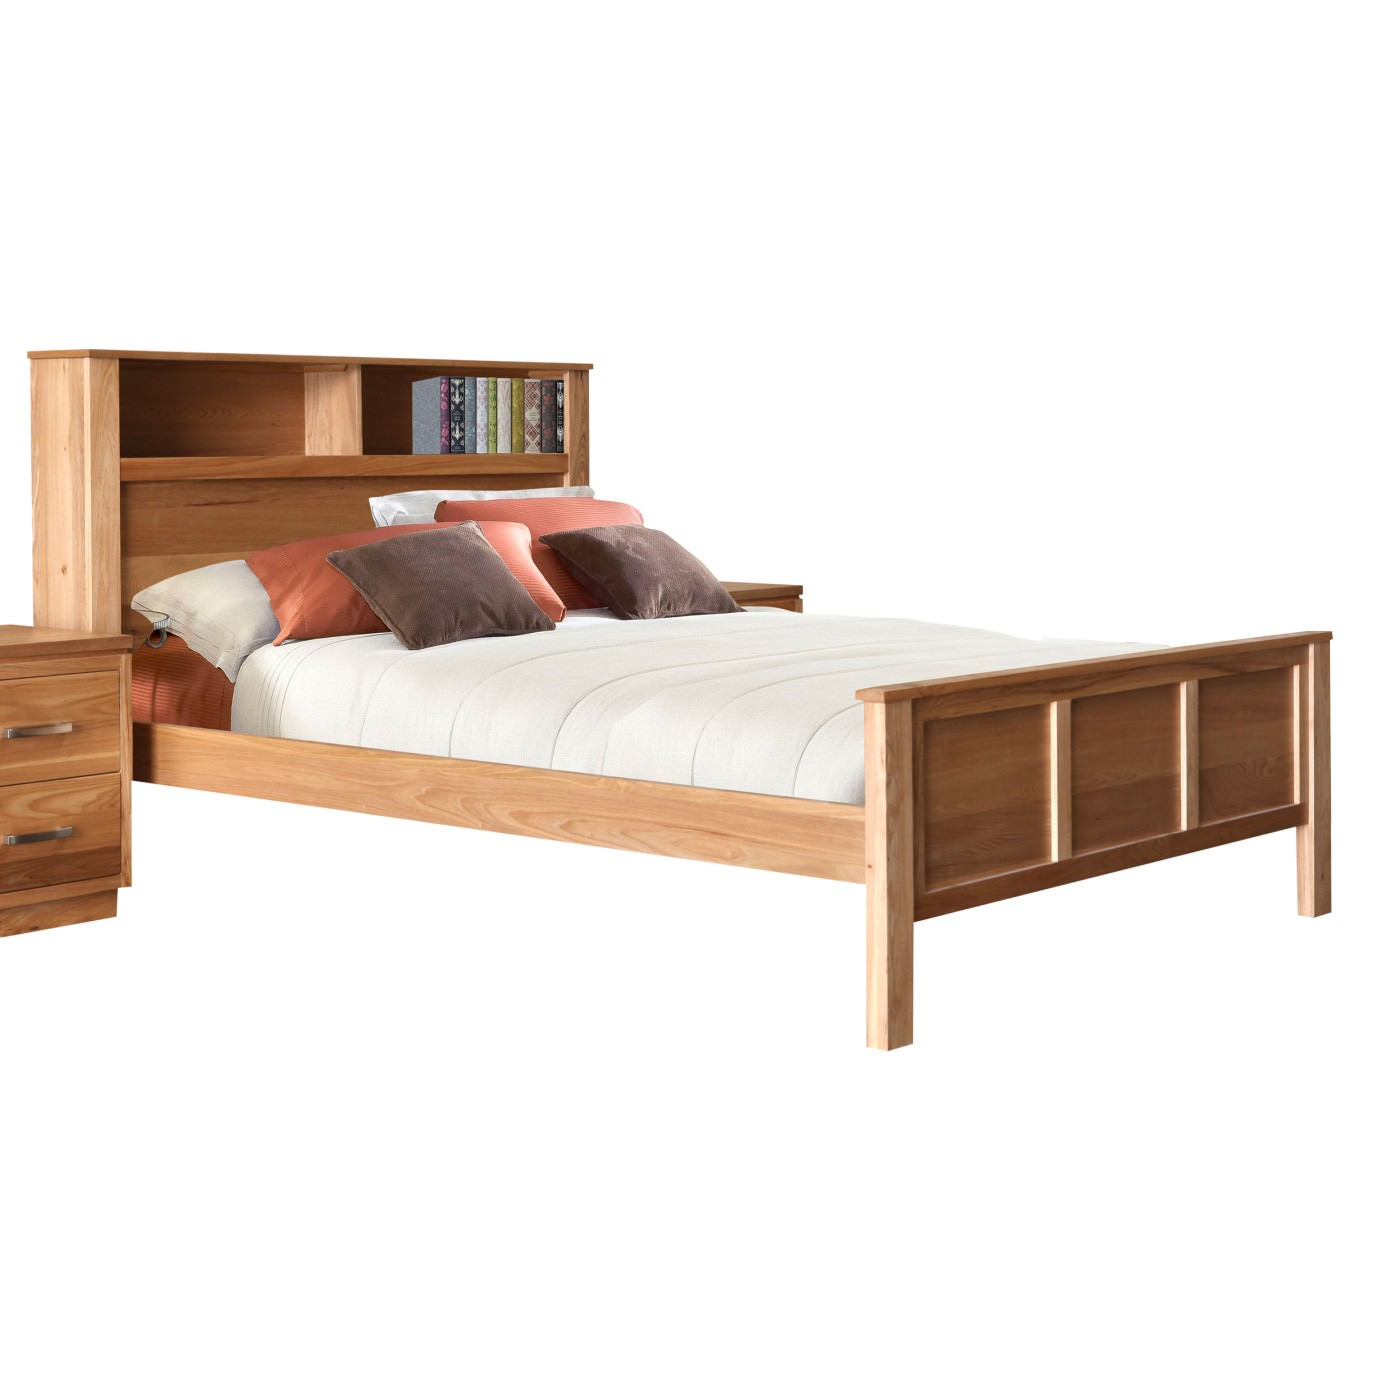 Tara Elm Timber Bookcase Bed Queen